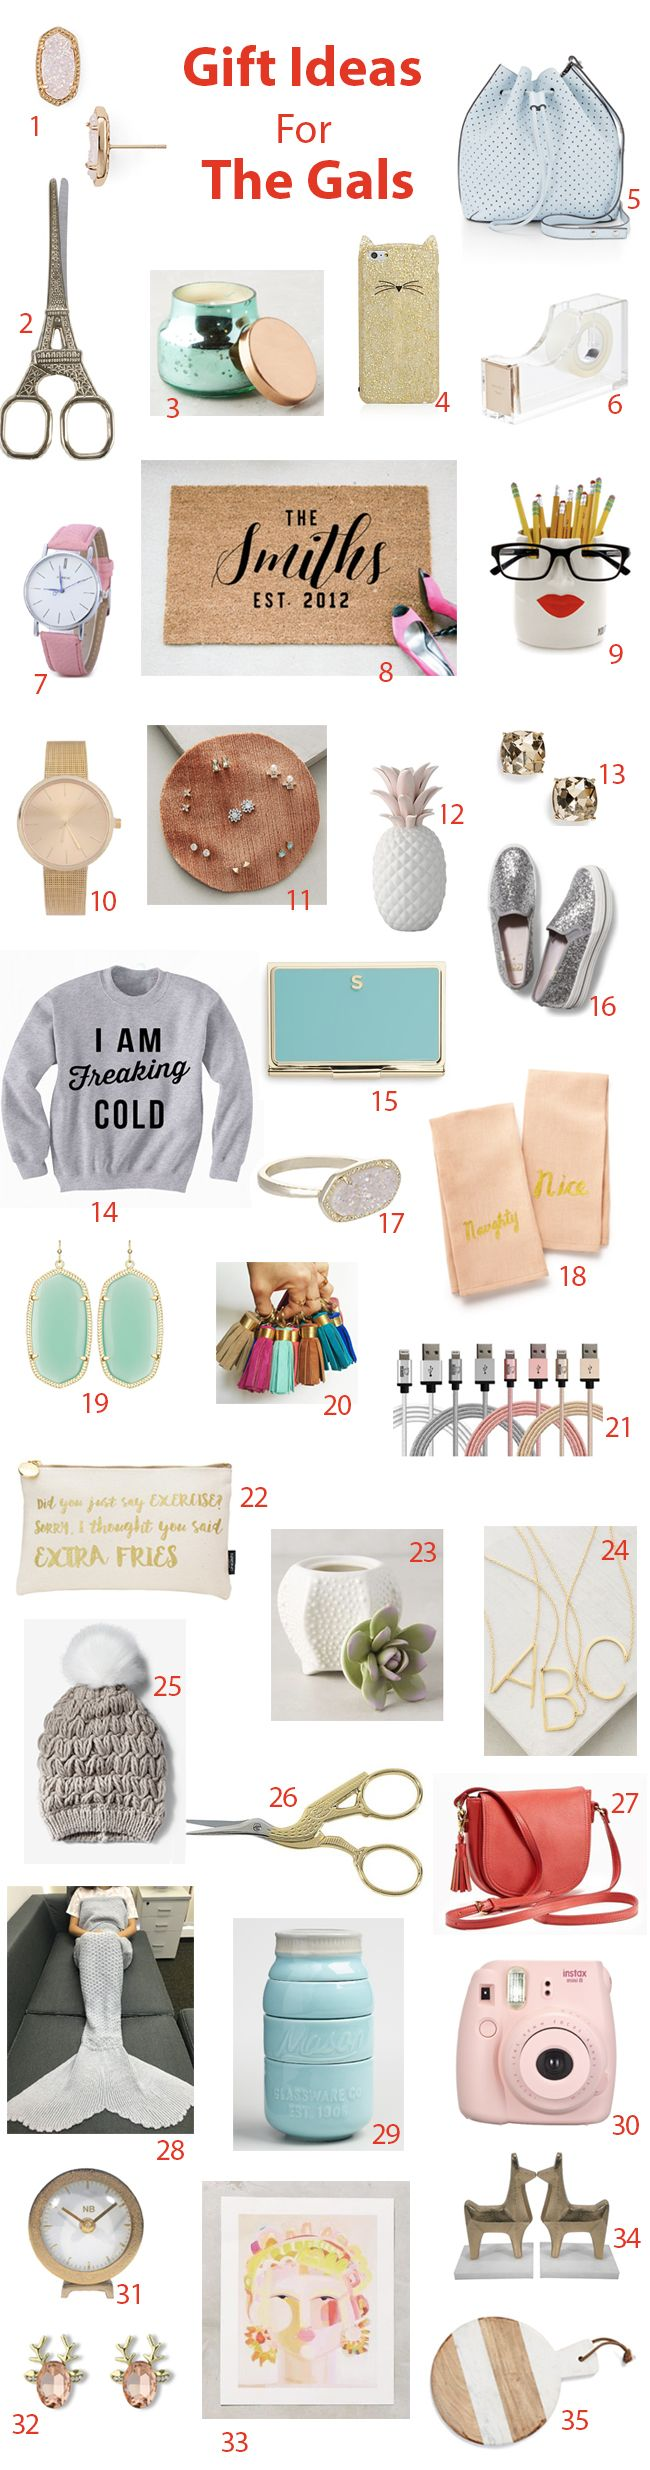 A giant gift guide for gals full of affordable and fun items (many of which are hugely marked down - there are $3 watches!!)